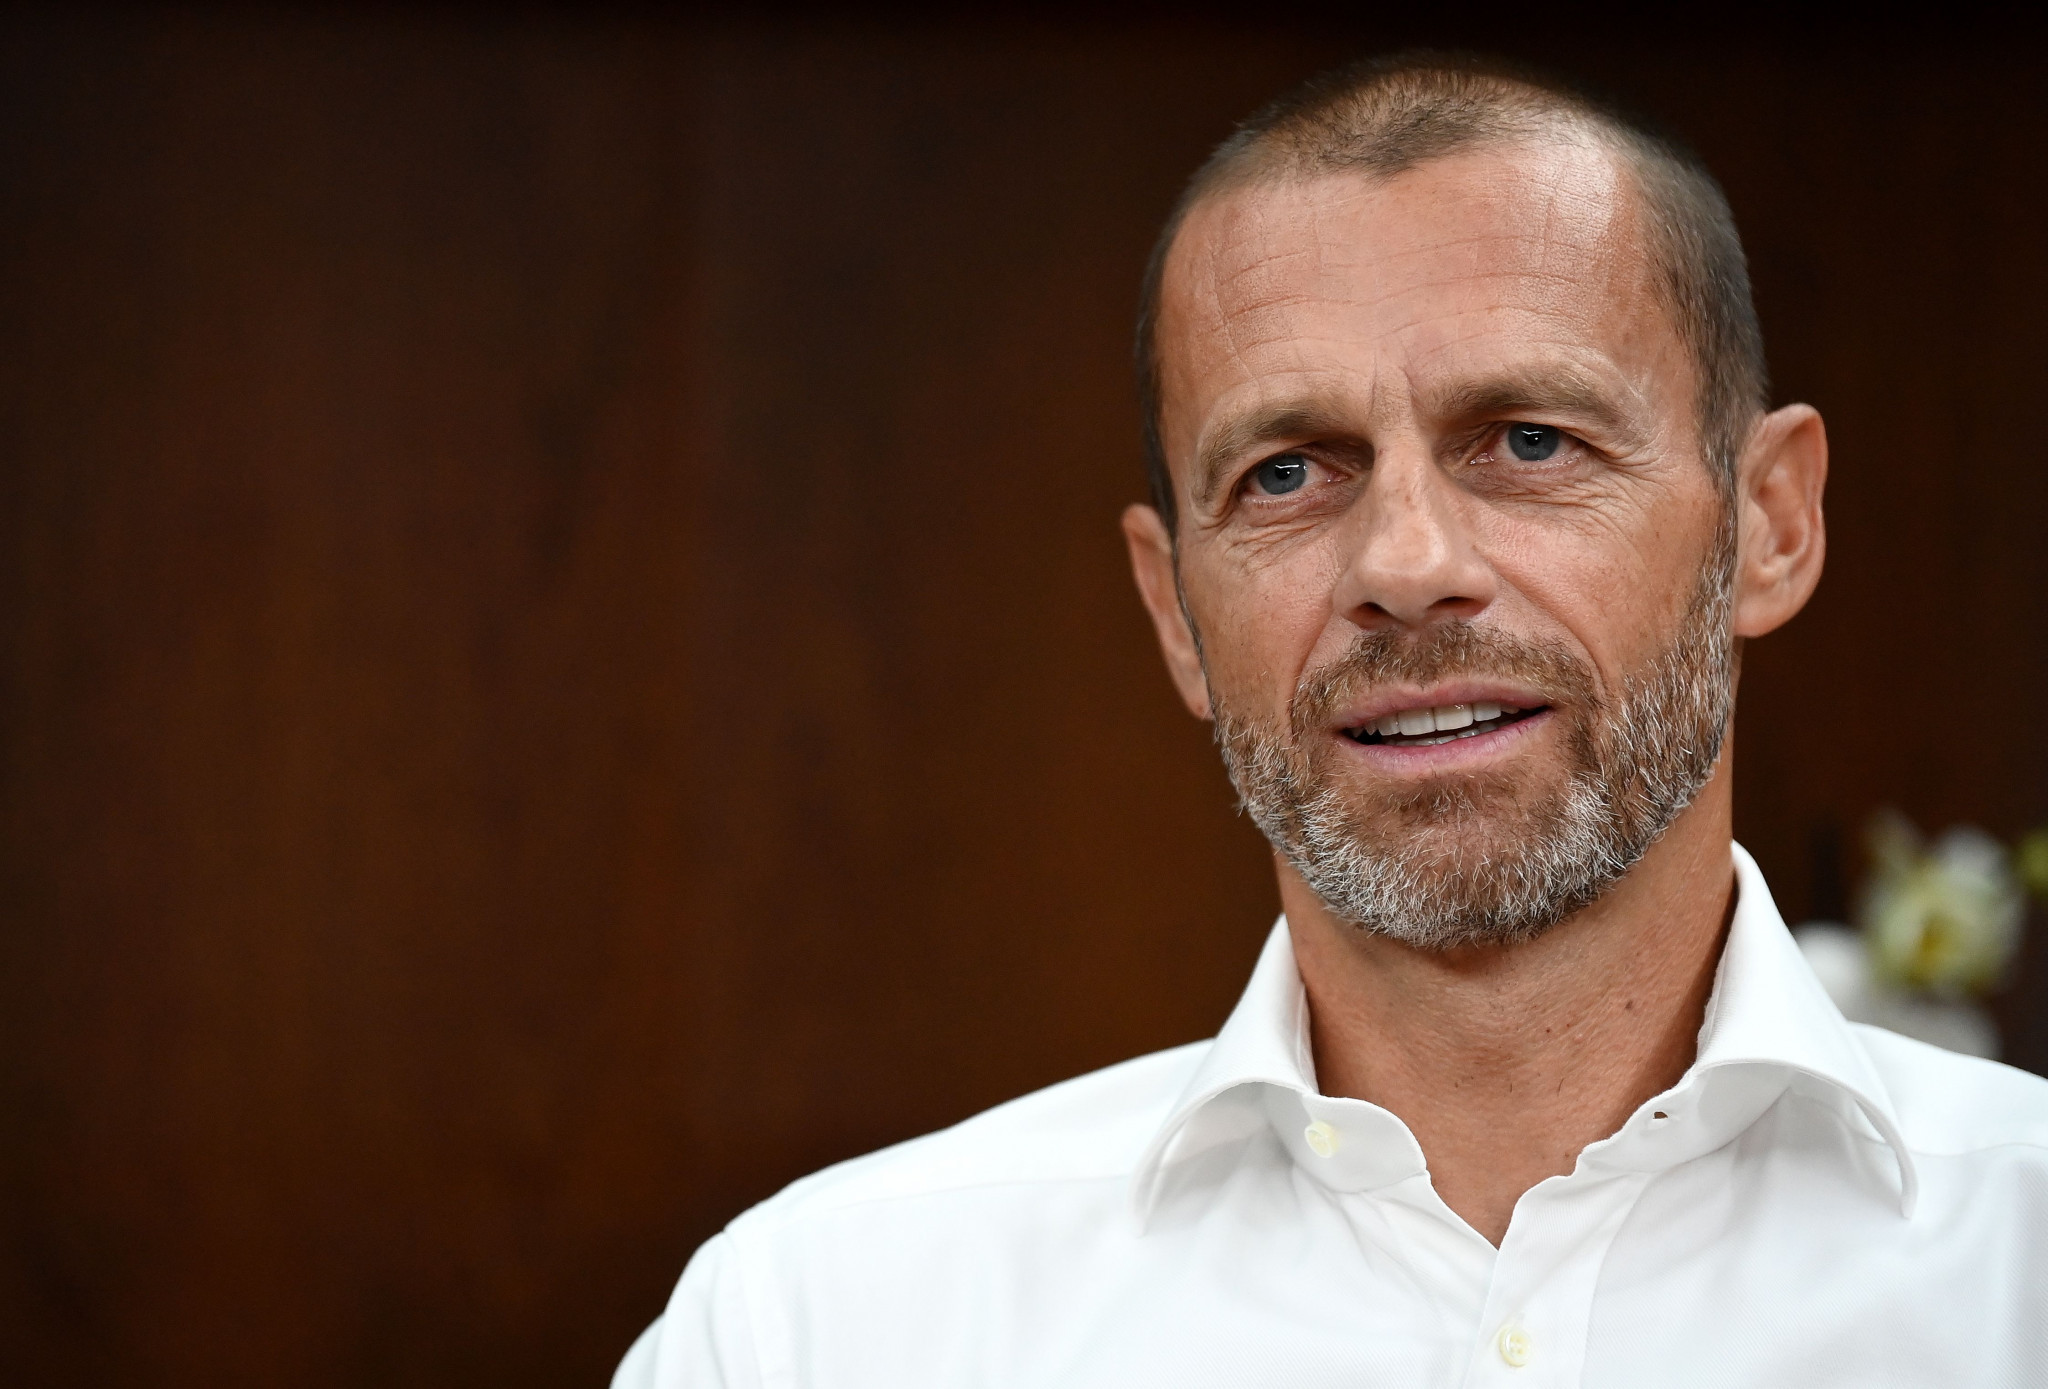 A furious UEFA President Aleksander Čeferin hit out at The Super League today, calling it